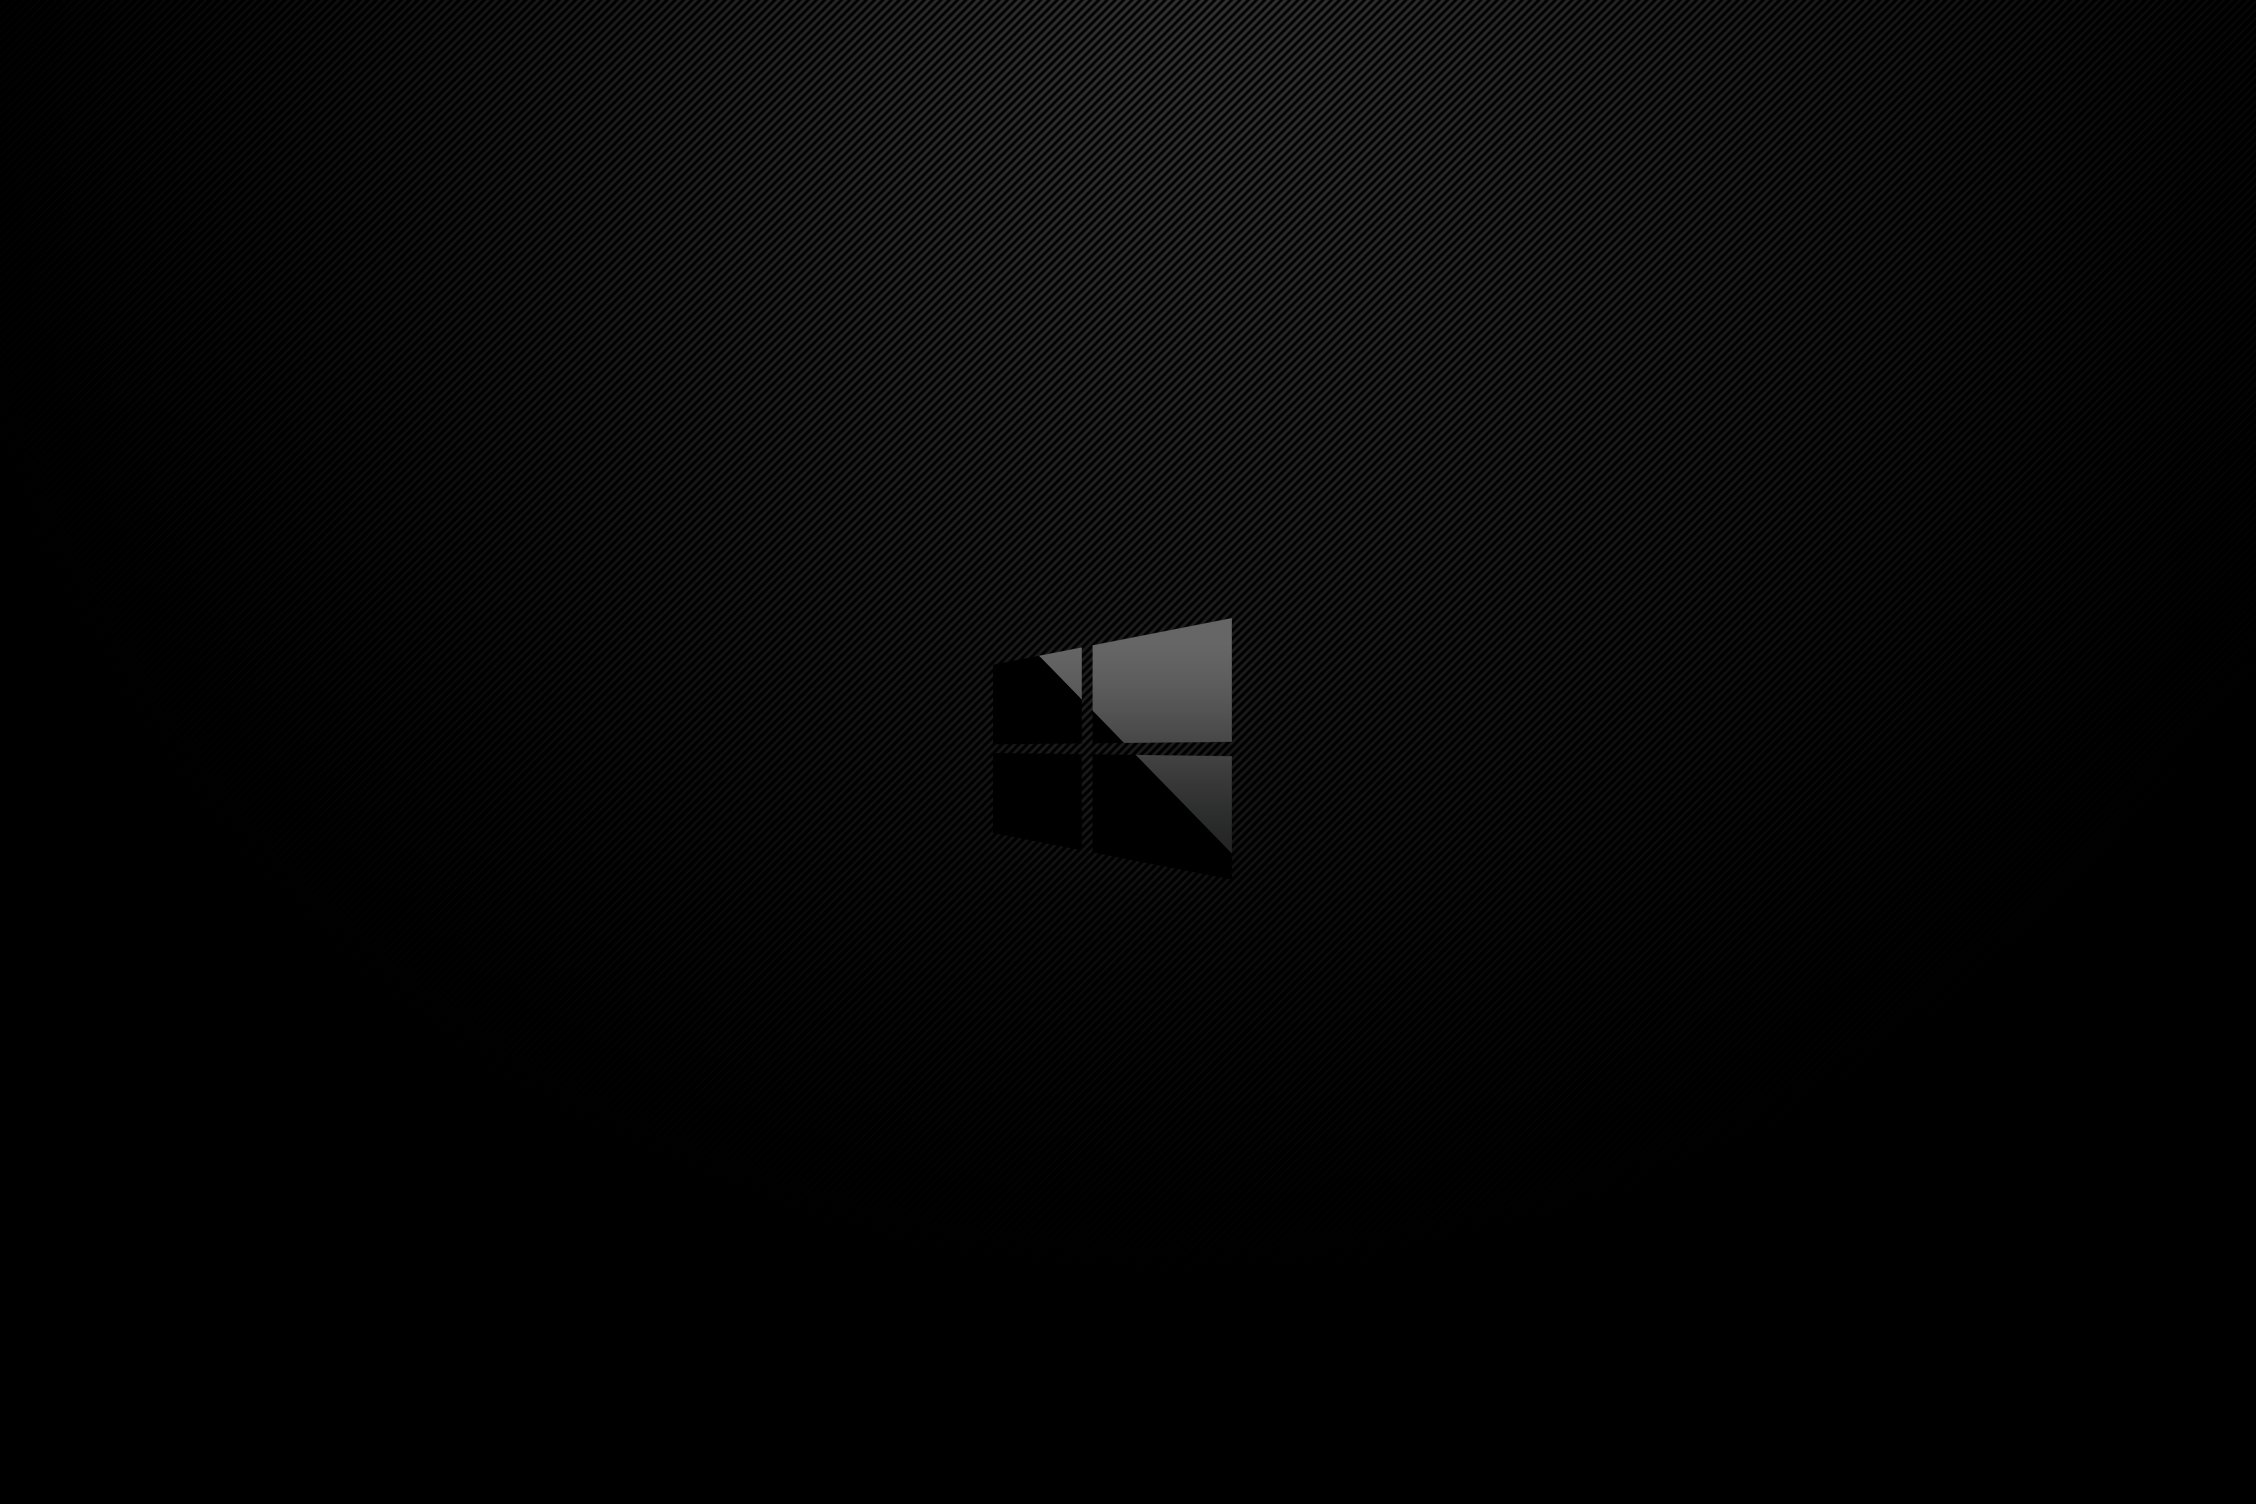 Dark 4k Wallpaper Minimalist